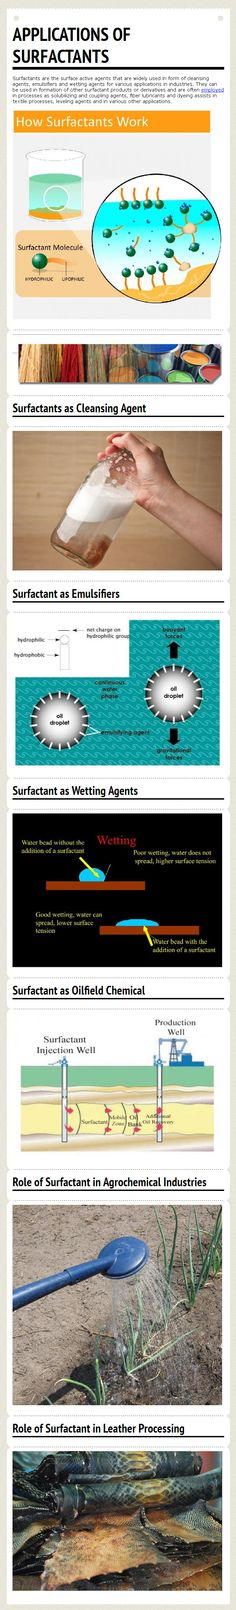 Surfactants are the surface active agents that are widely used in form of cleansing agents, emulsifiers and wetting agents for various applications in industries.  For more details on different types of Surfactants and their industrial applications, visit - http://www.rimpro-india.com/surfactant.html    This infograph has been sourced from - http://www.rimpro-india.com/articles1/154-applications-of-surfactants-infograph.html